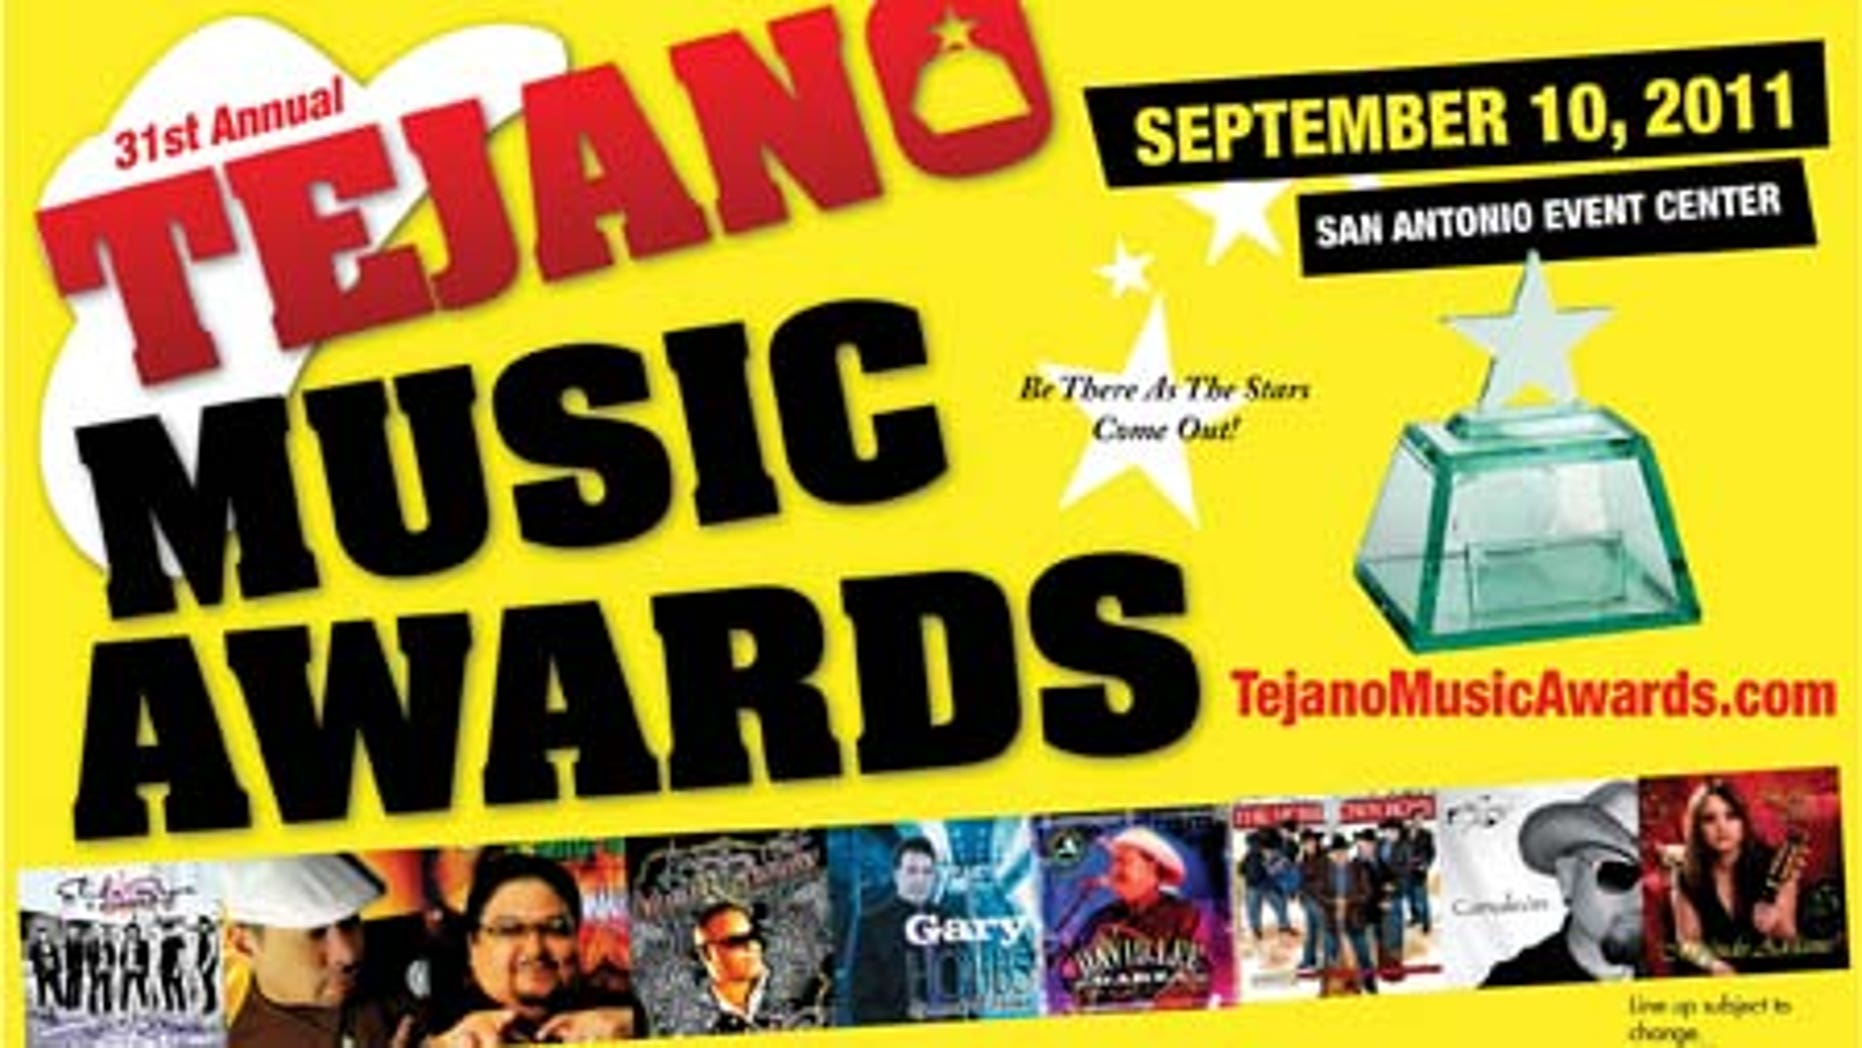 The 31st Annual Tejano Music Awards are scheduled to  take place Saturday, September 10, 2011 at the San Antonio Event Center in San Antonio, Texas.